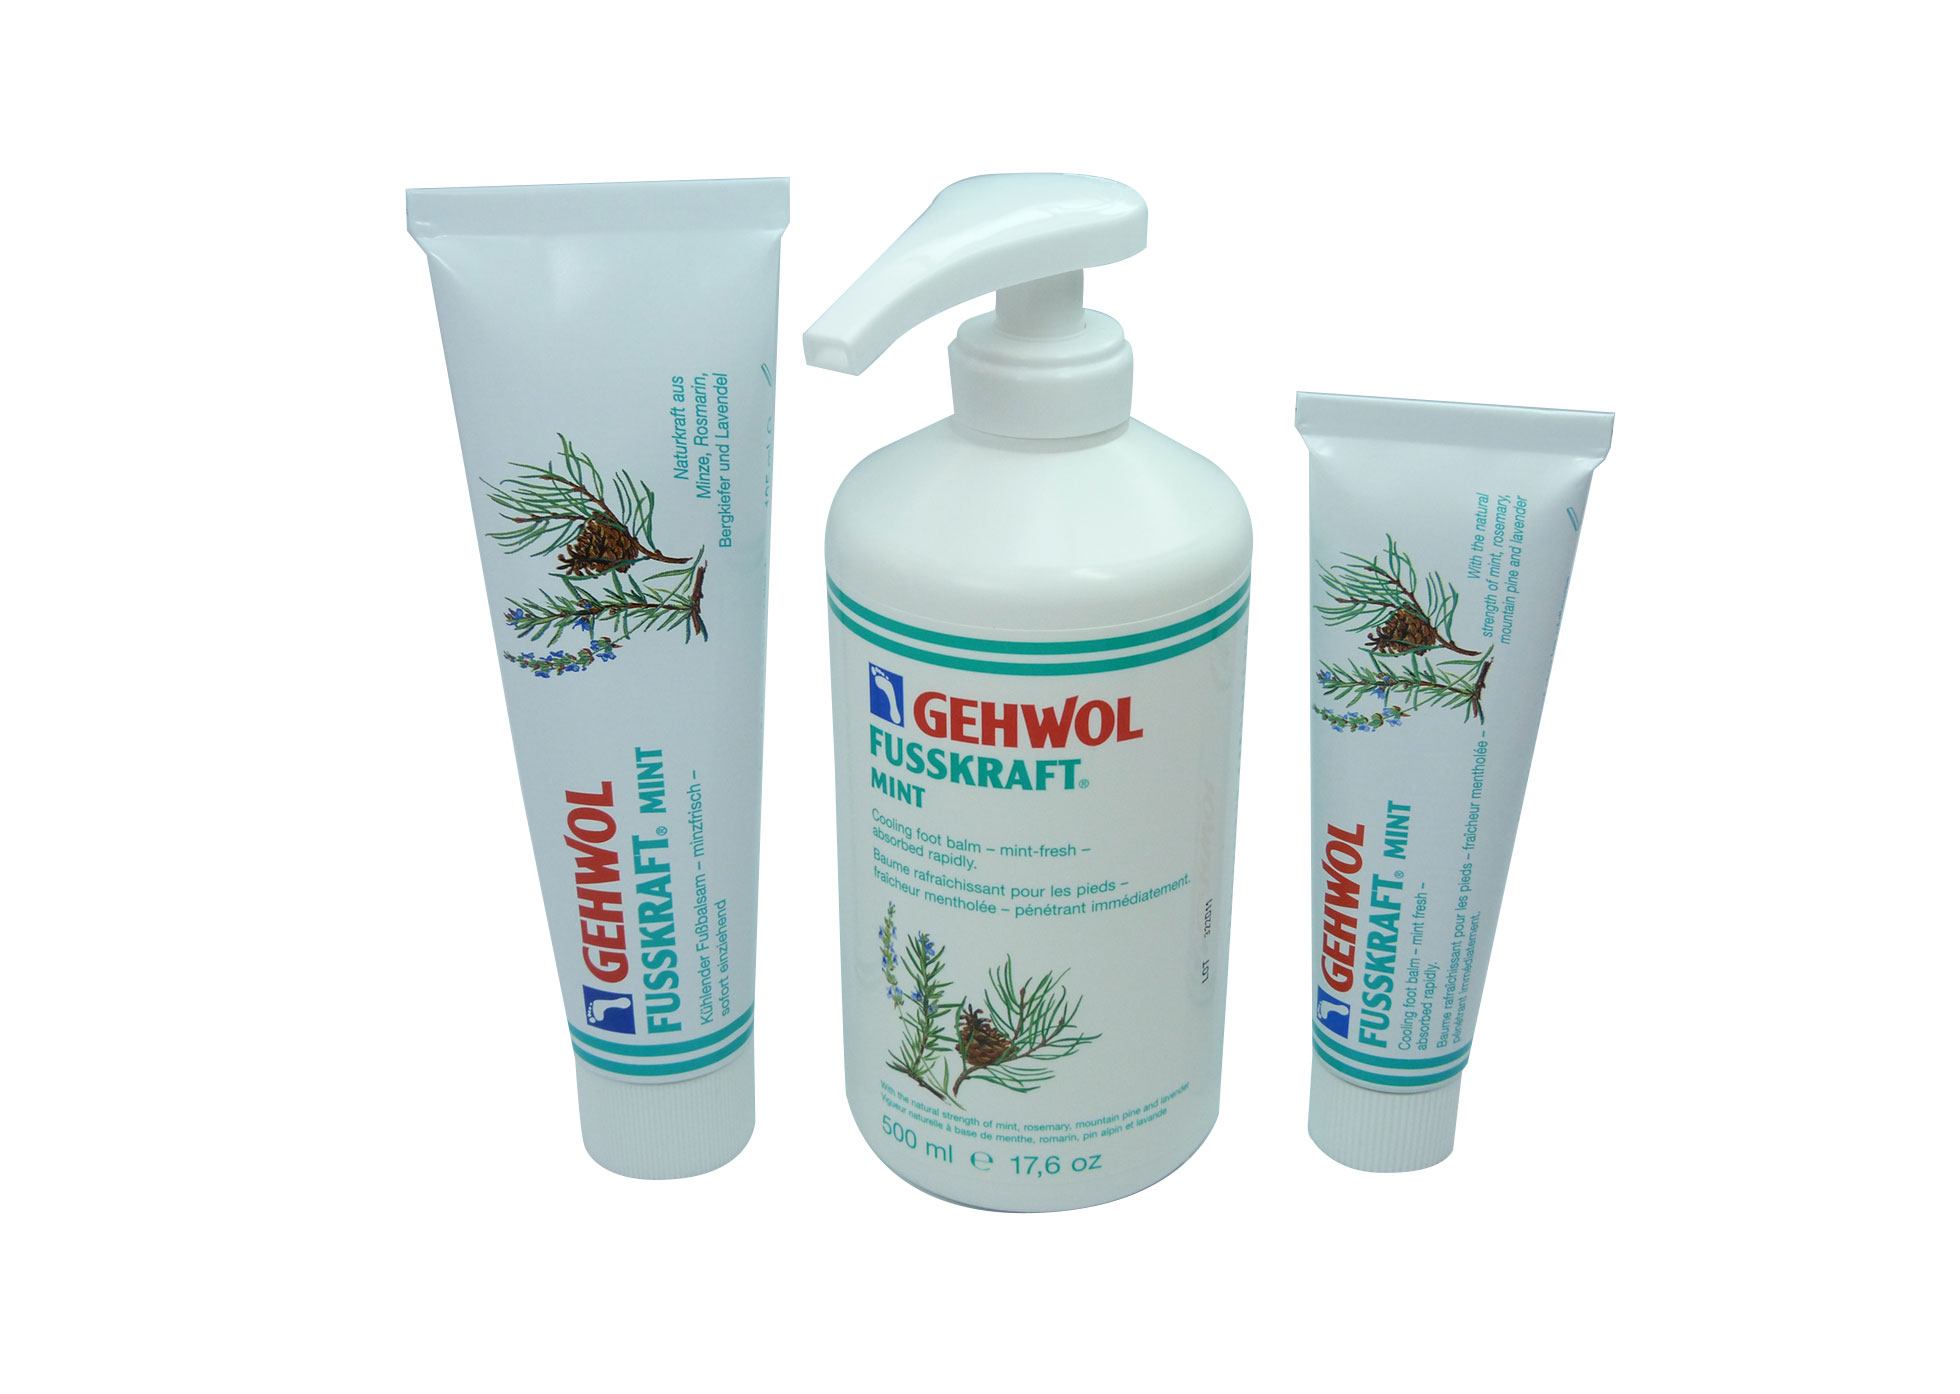 Gehwol - Fusskraft Mint - 75ml Tube